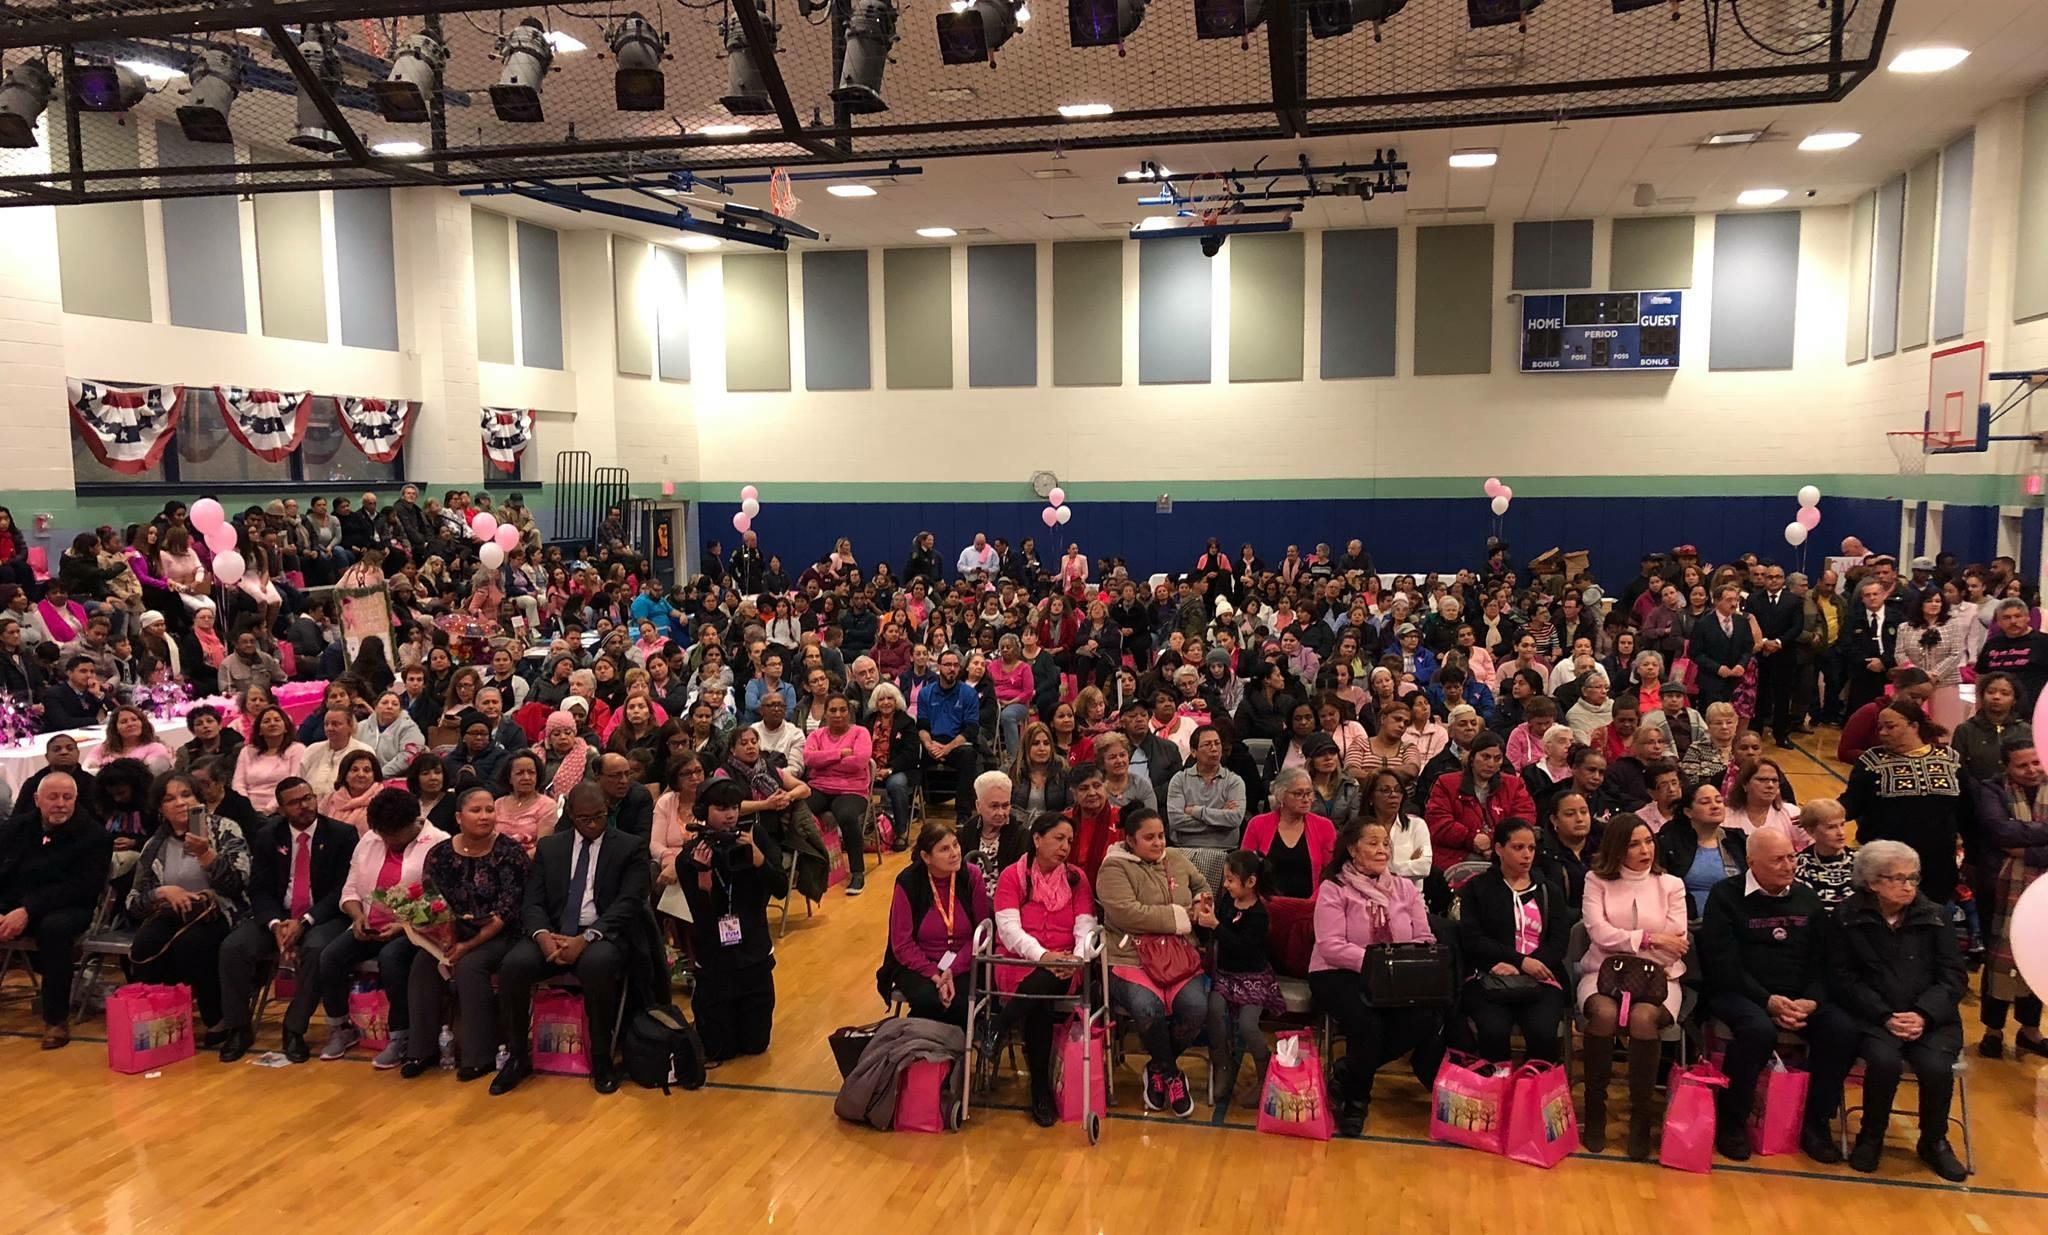 crowd of pink supporters